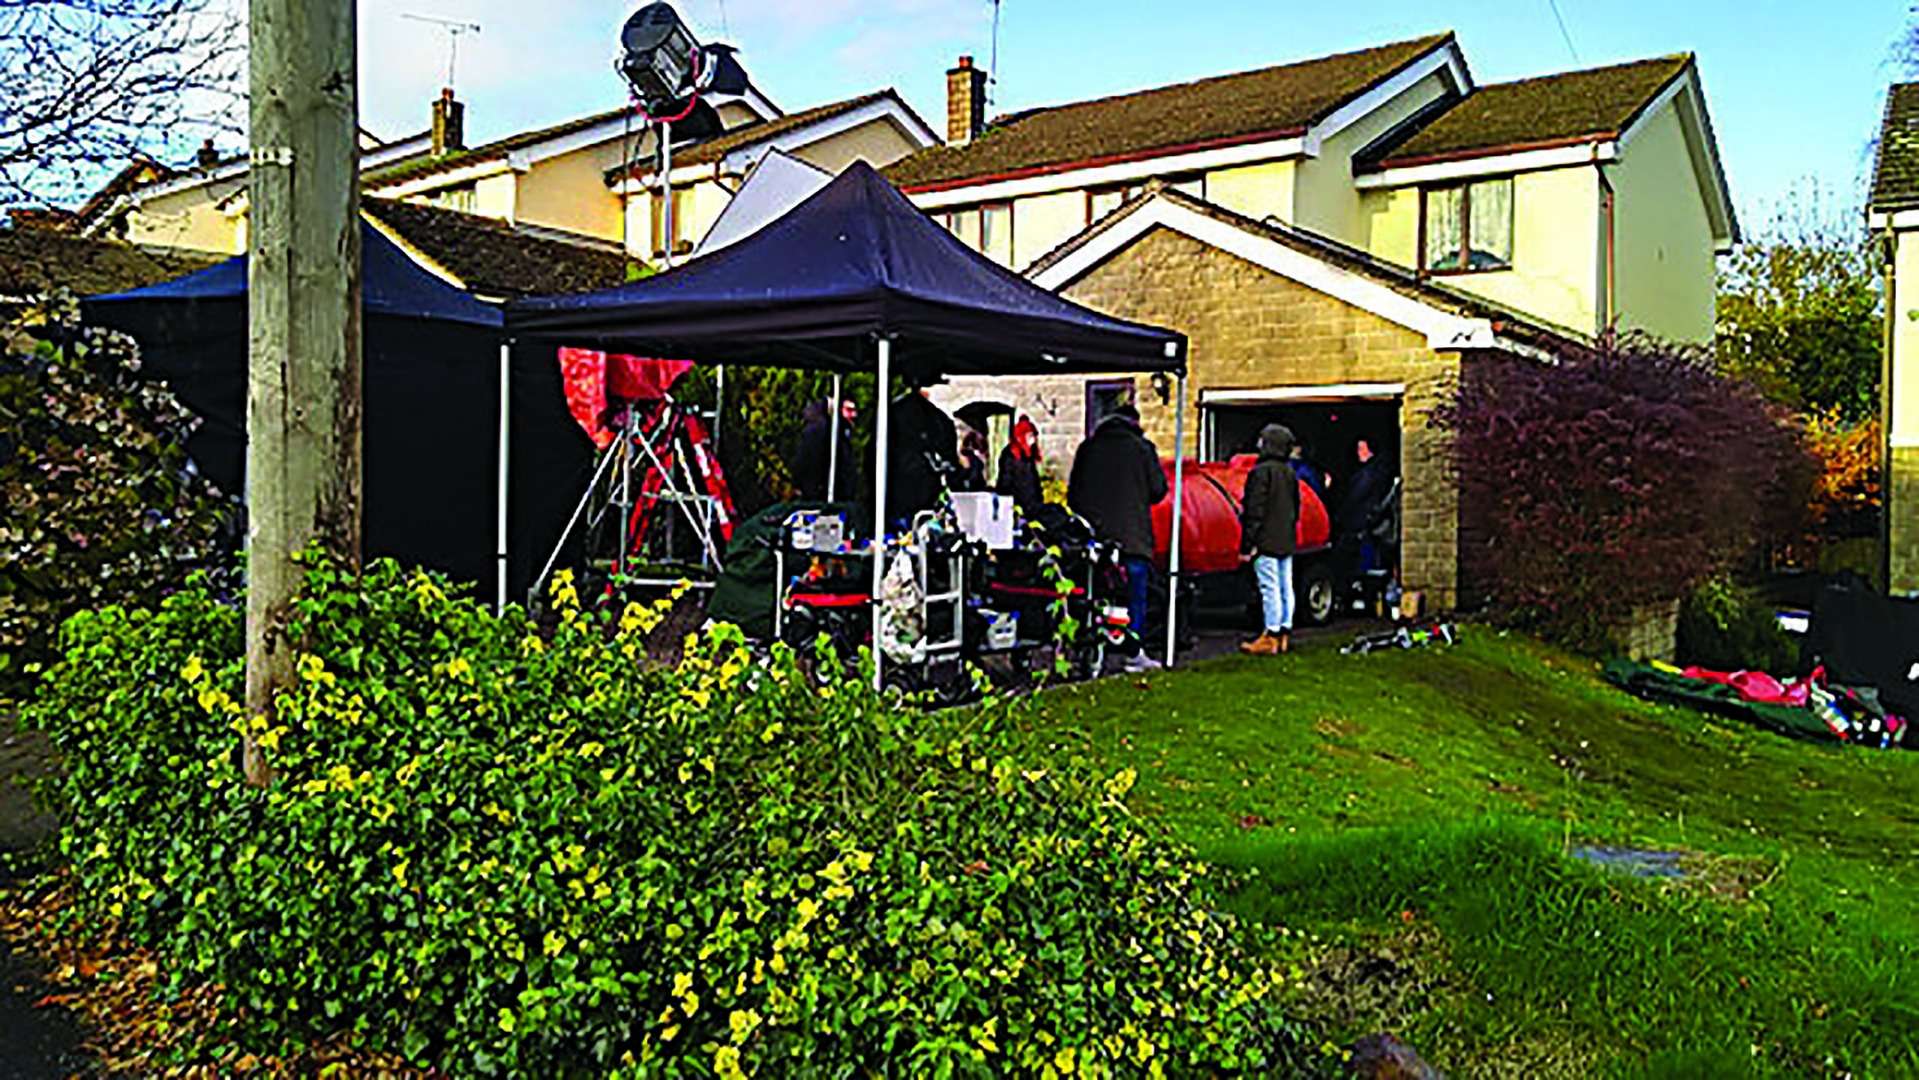 Channel Four films new series in Norden